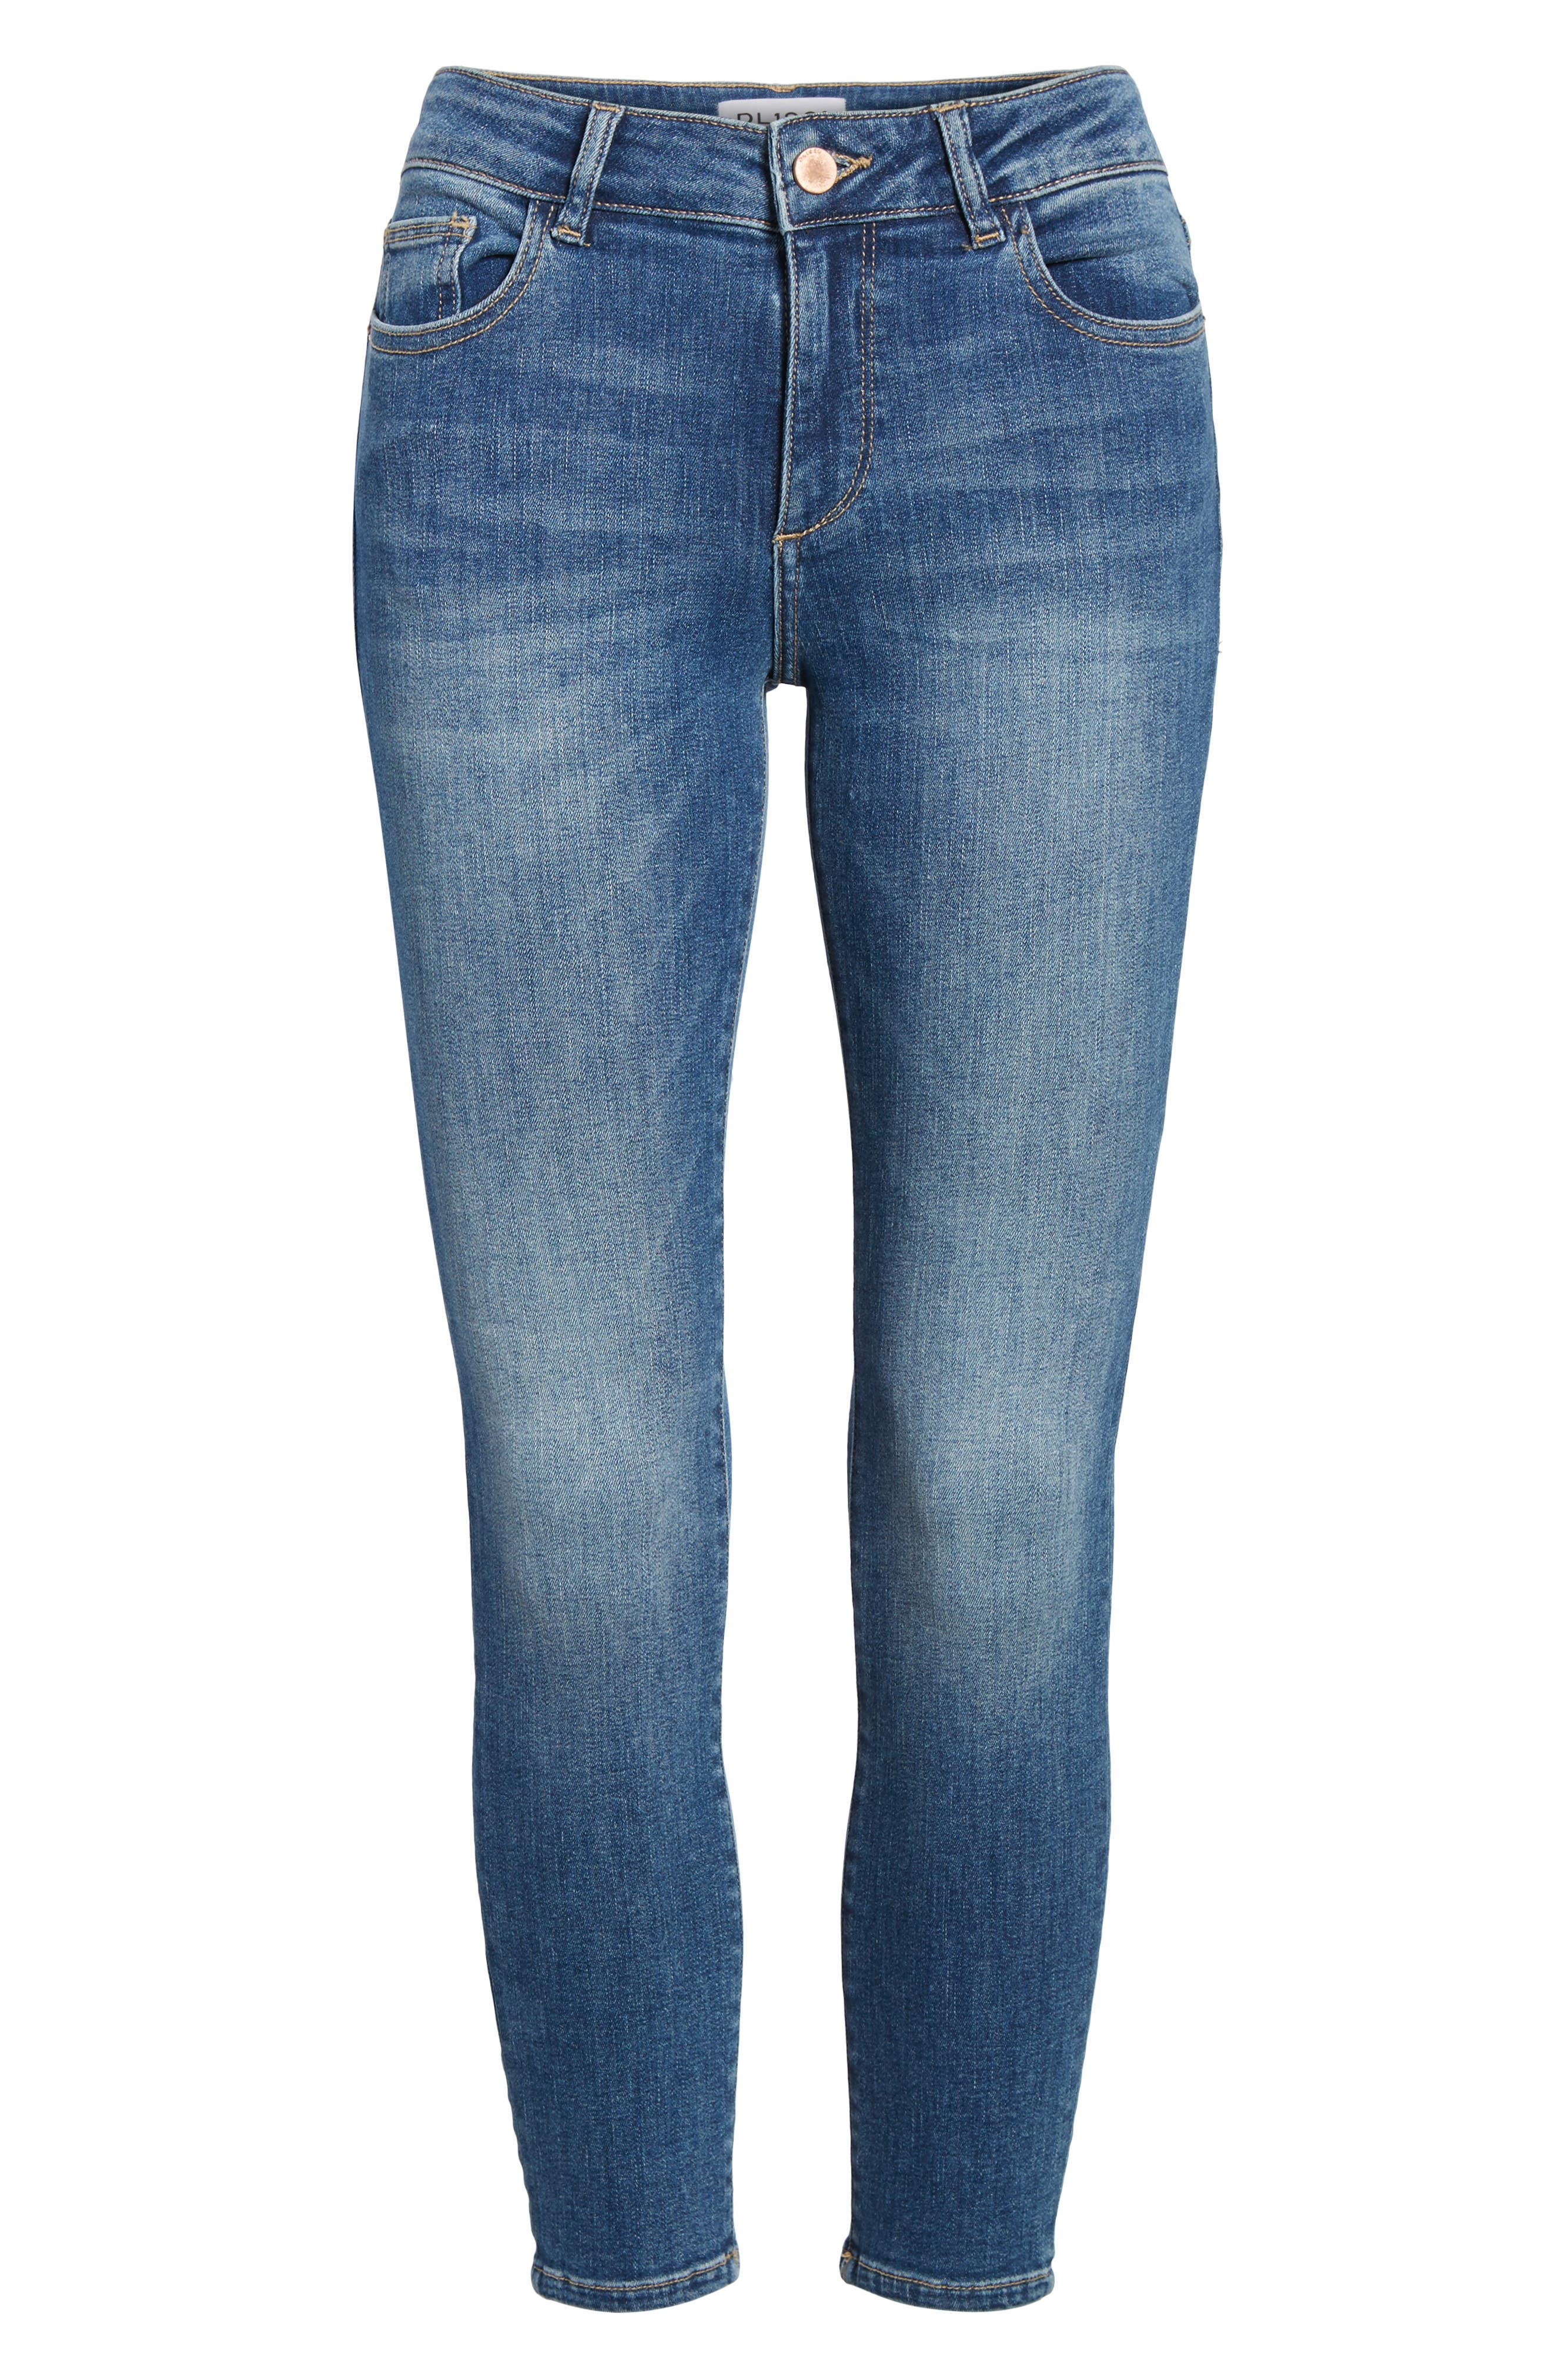 Florence Instasculpt Crop Skinny Jeans,                             Alternate thumbnail 7, color,                             Everglade